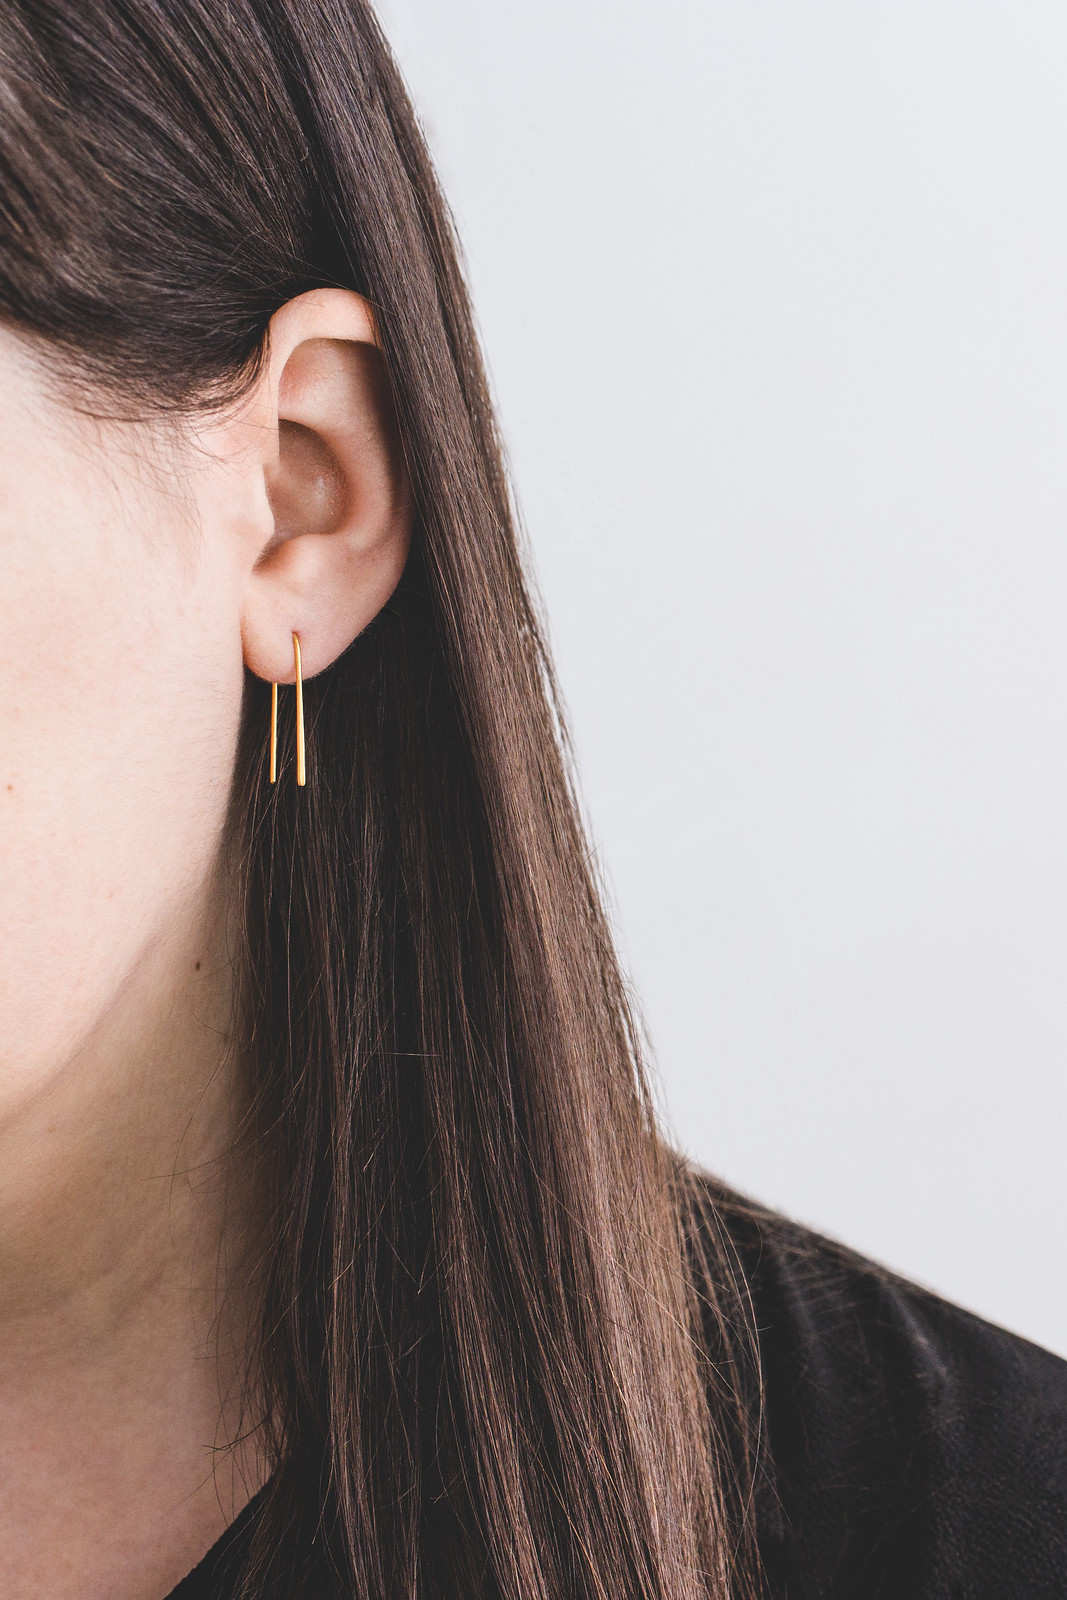 The Arc Earrings Have Returned